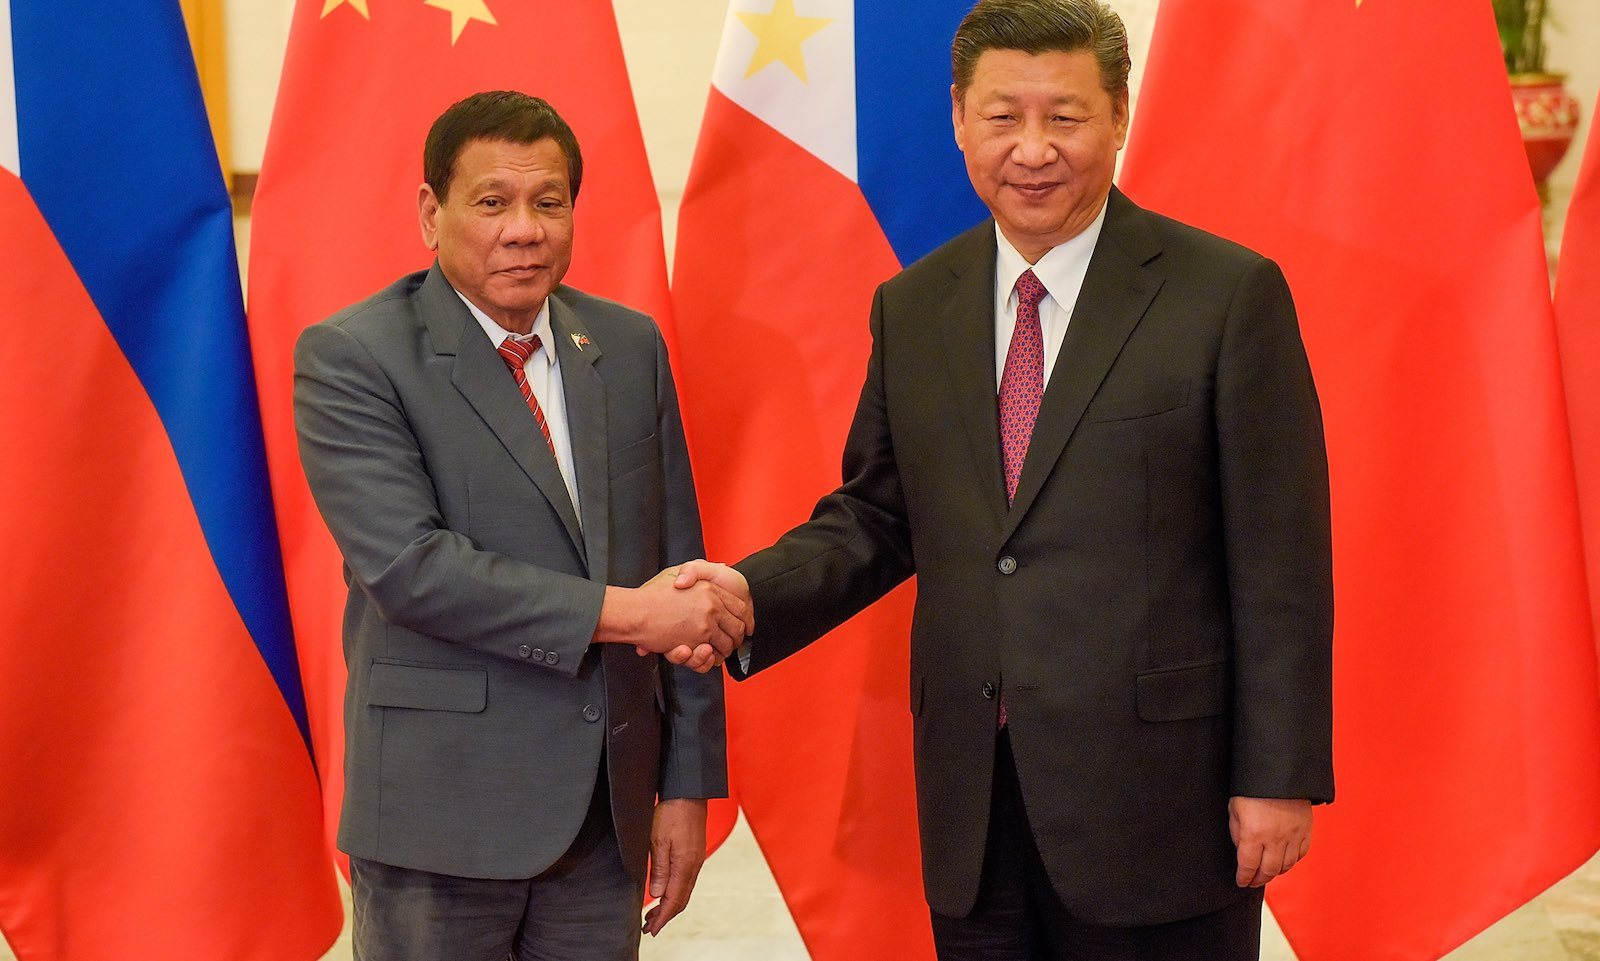 Philippines President Rodrigo Duterte in Beijing meeting China's Xi Jinping in 2017 (Photo: Etienne Oliveau/Getty)